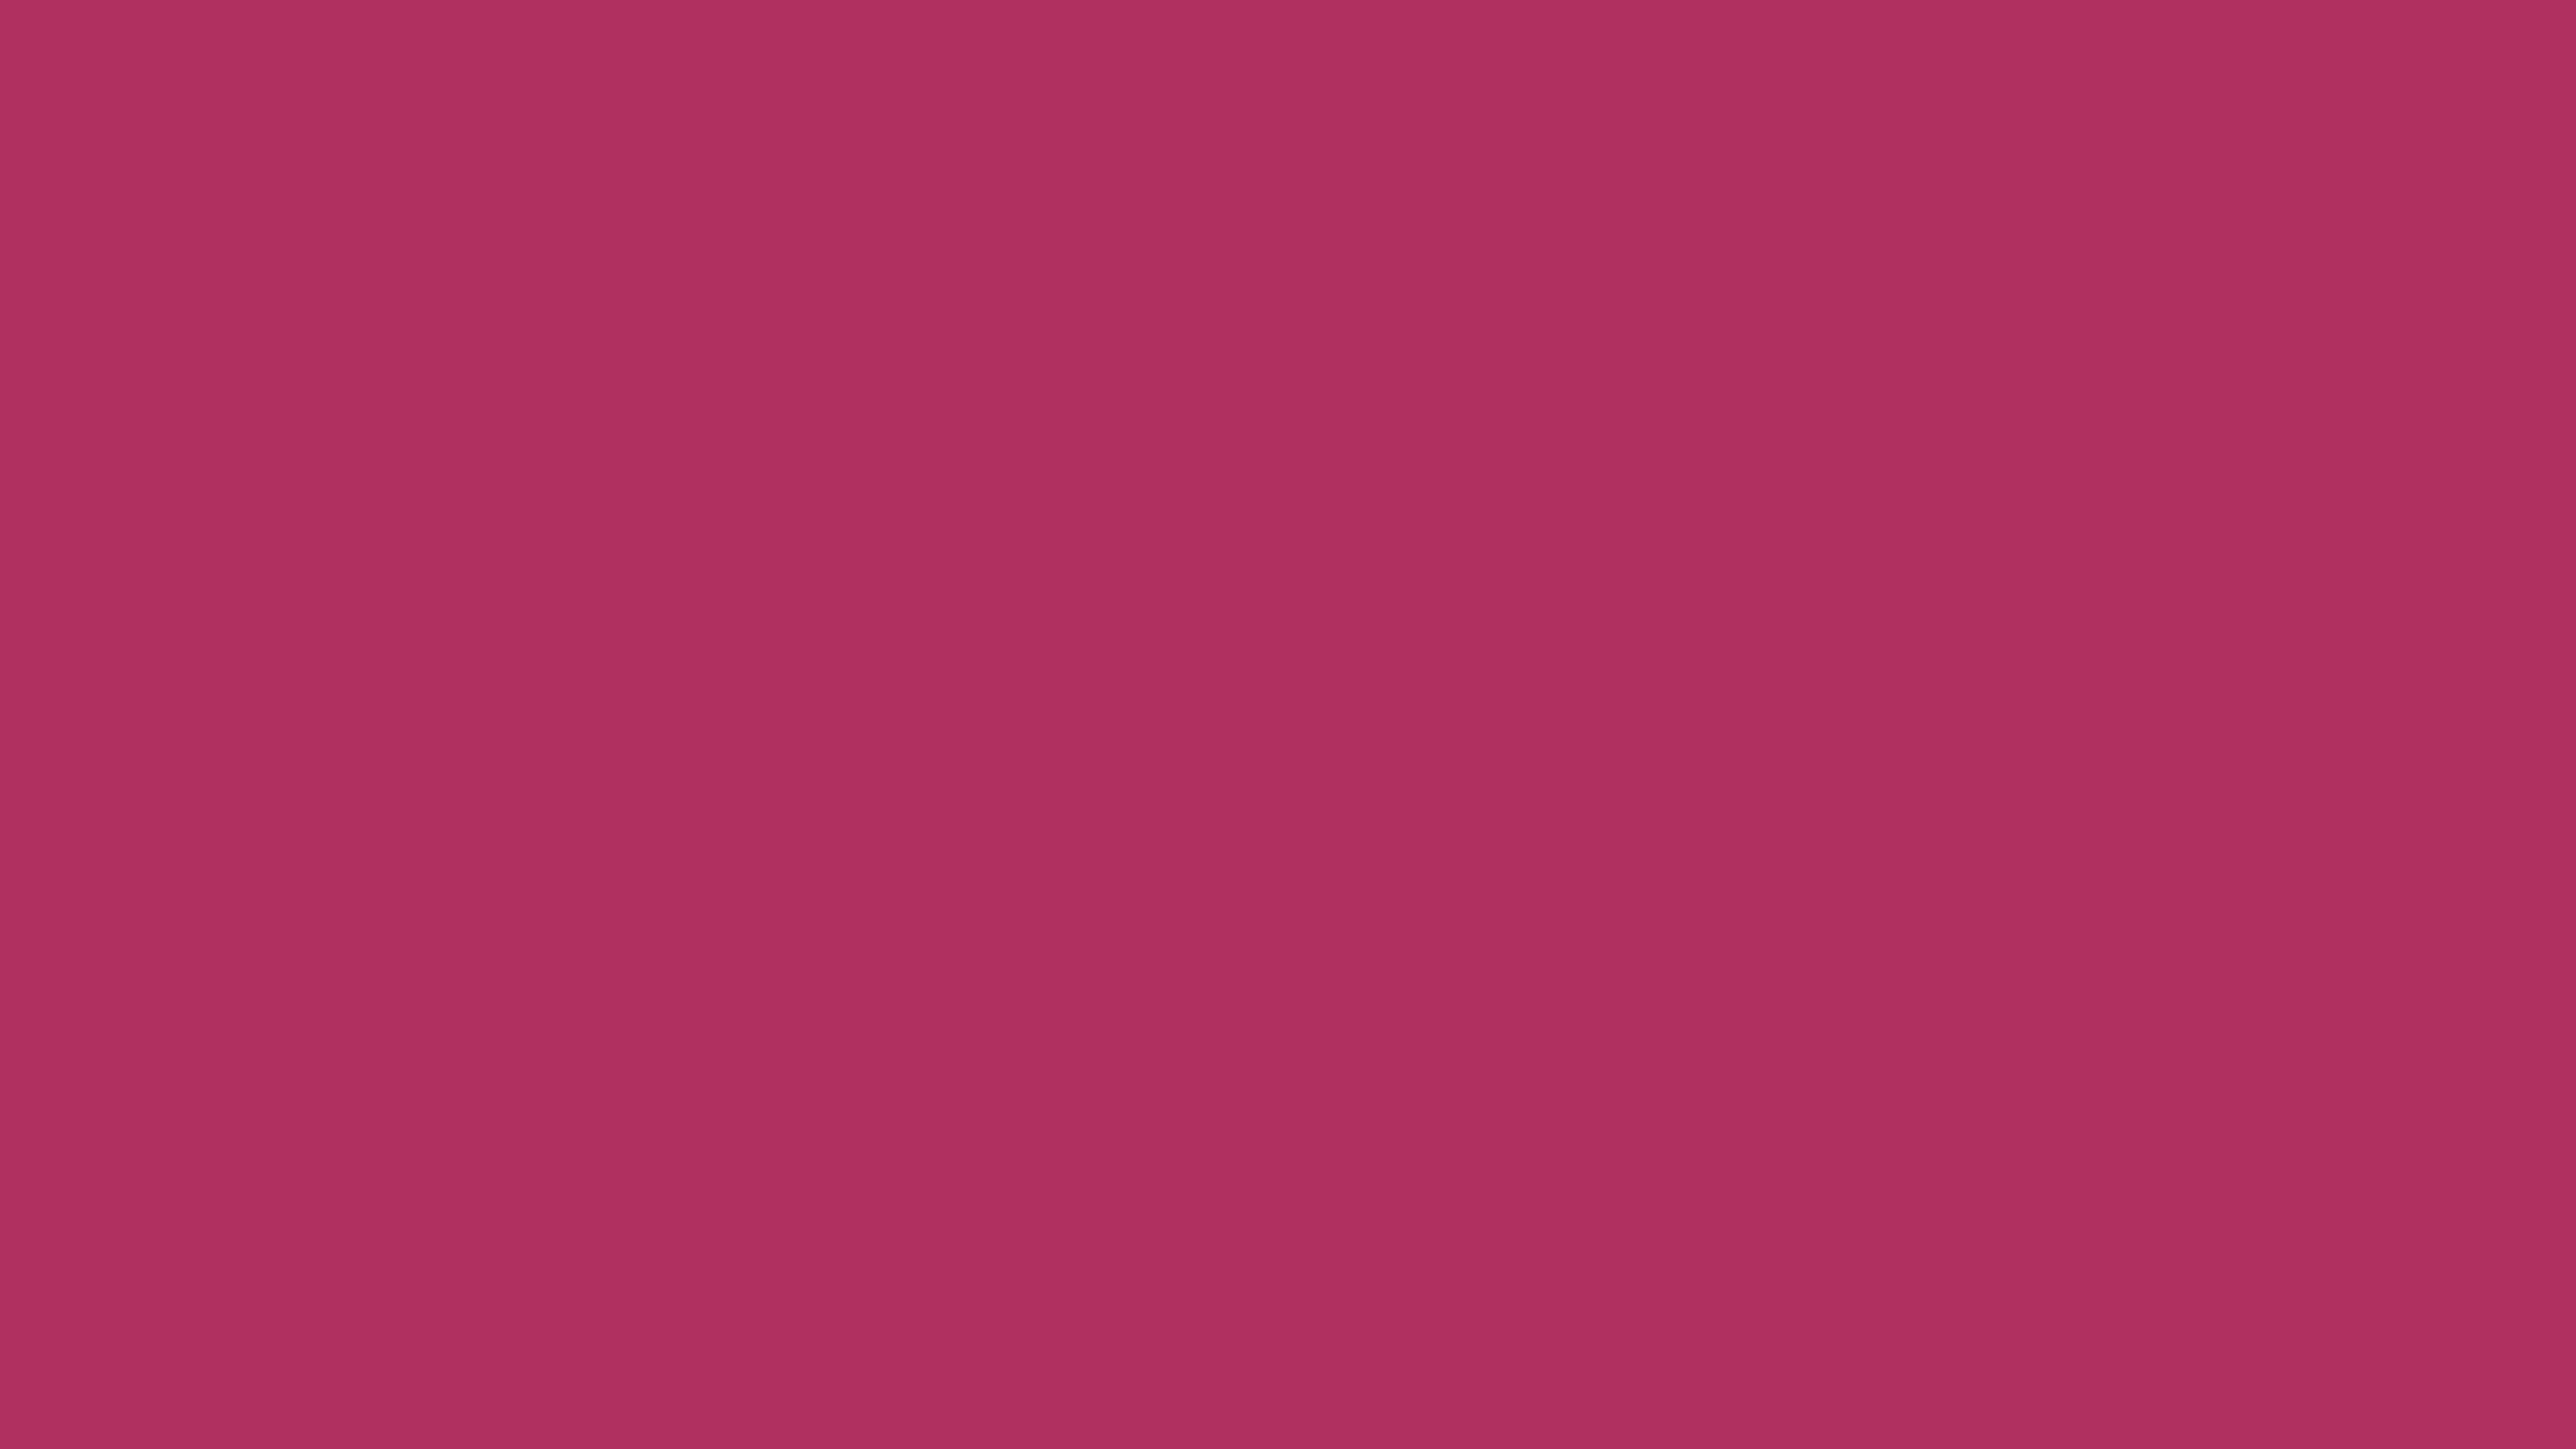 4096x2304 Maroon X11 Gui Solid Color Background